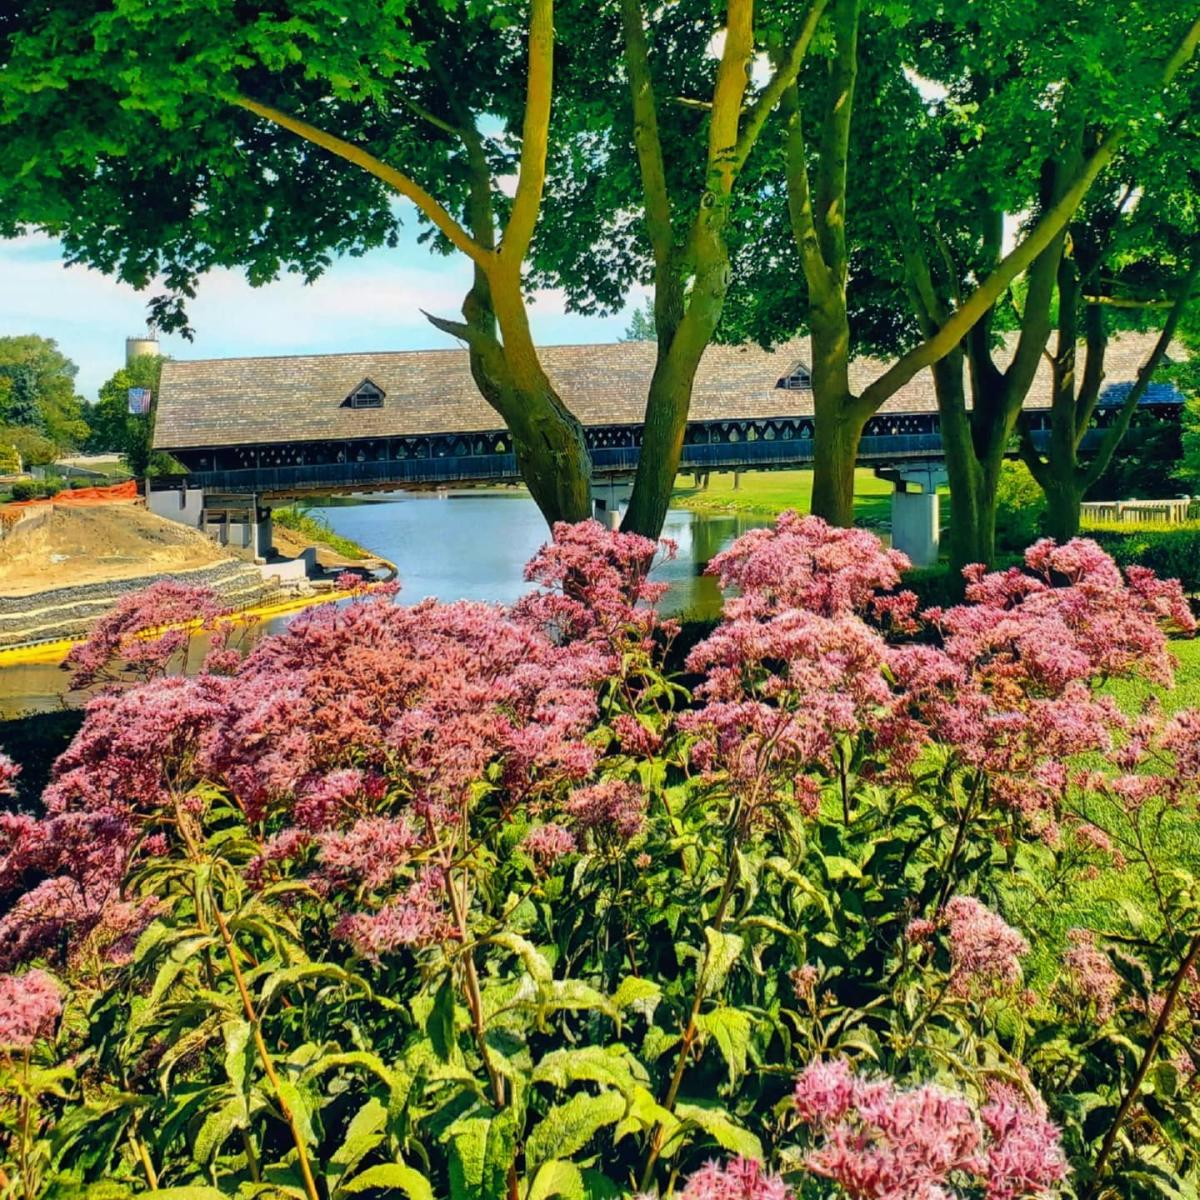 Pink flowers in front of the Holz Brücke Wooden Covered Bridge in Frankenmuth